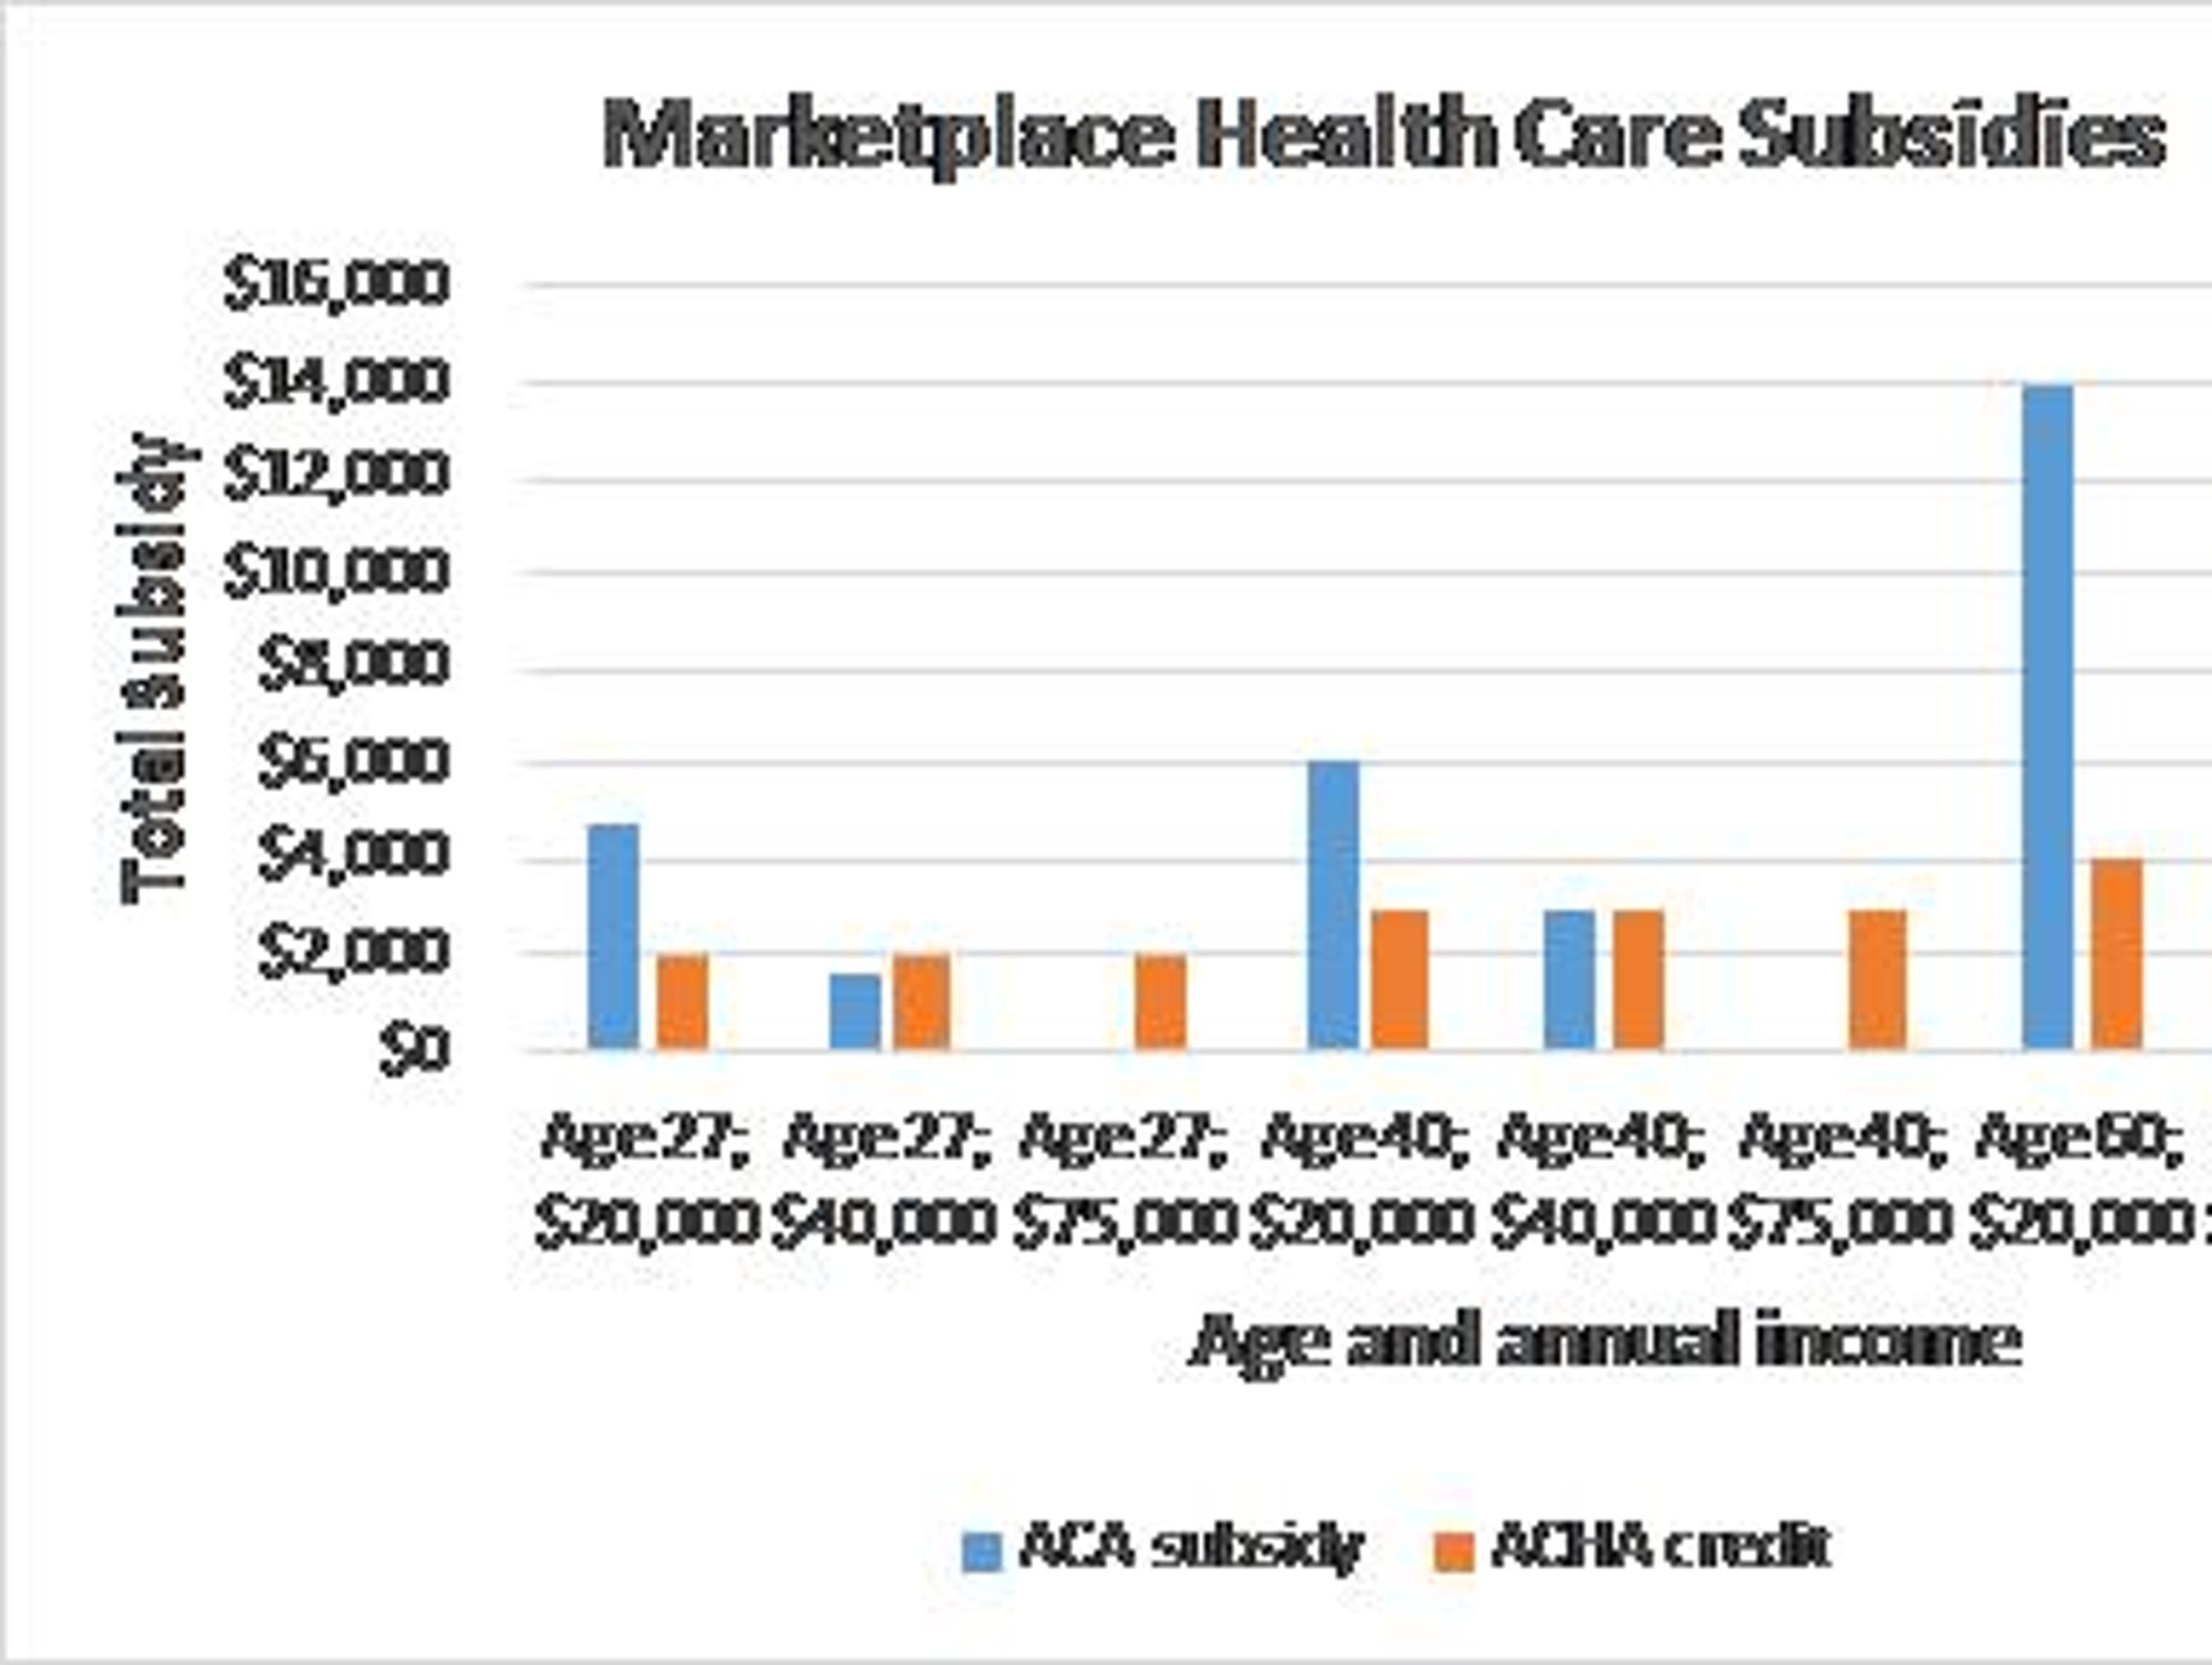 Health care subsides will typically be better for the